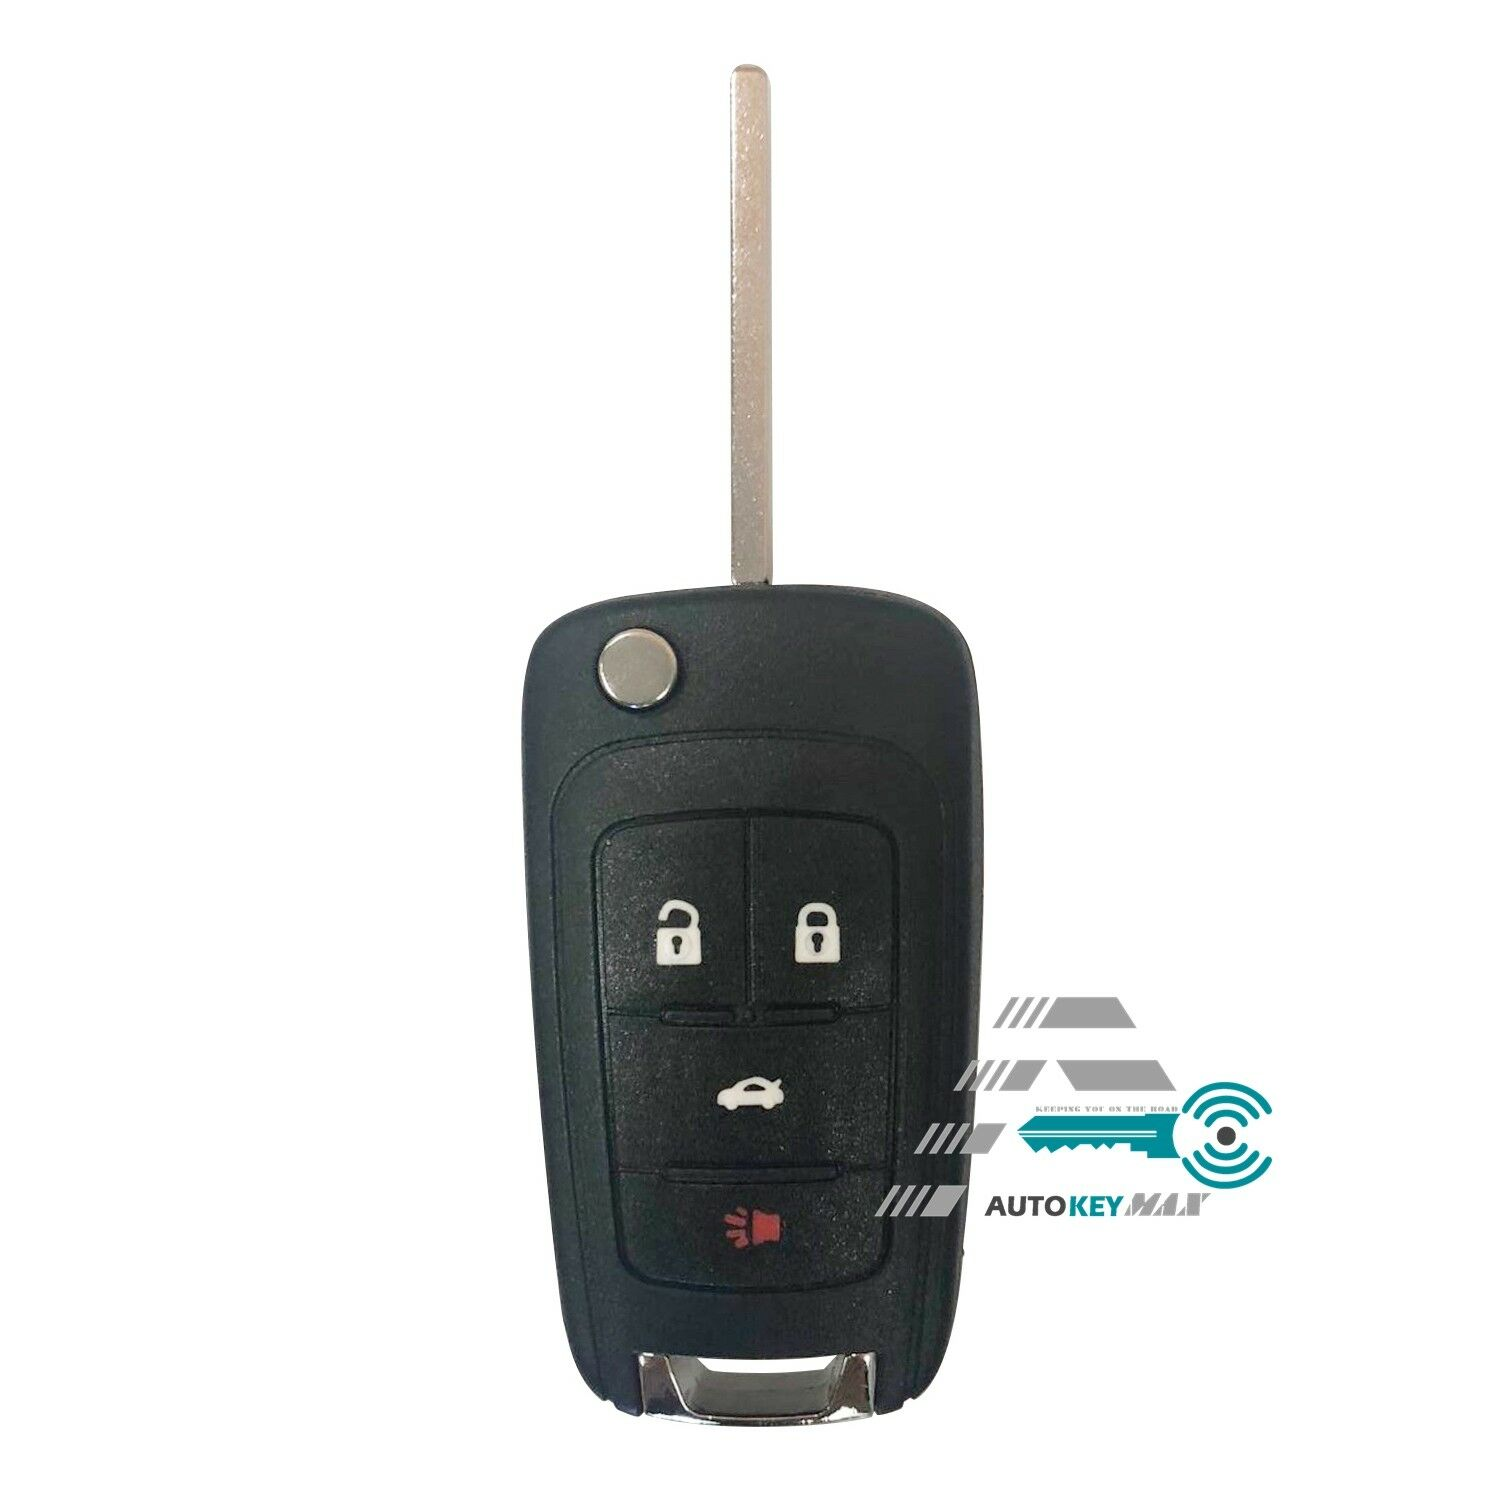 New Replacement Keyless Entry Car Remote Key Fob for Buick GMC Chevy OHT01060512